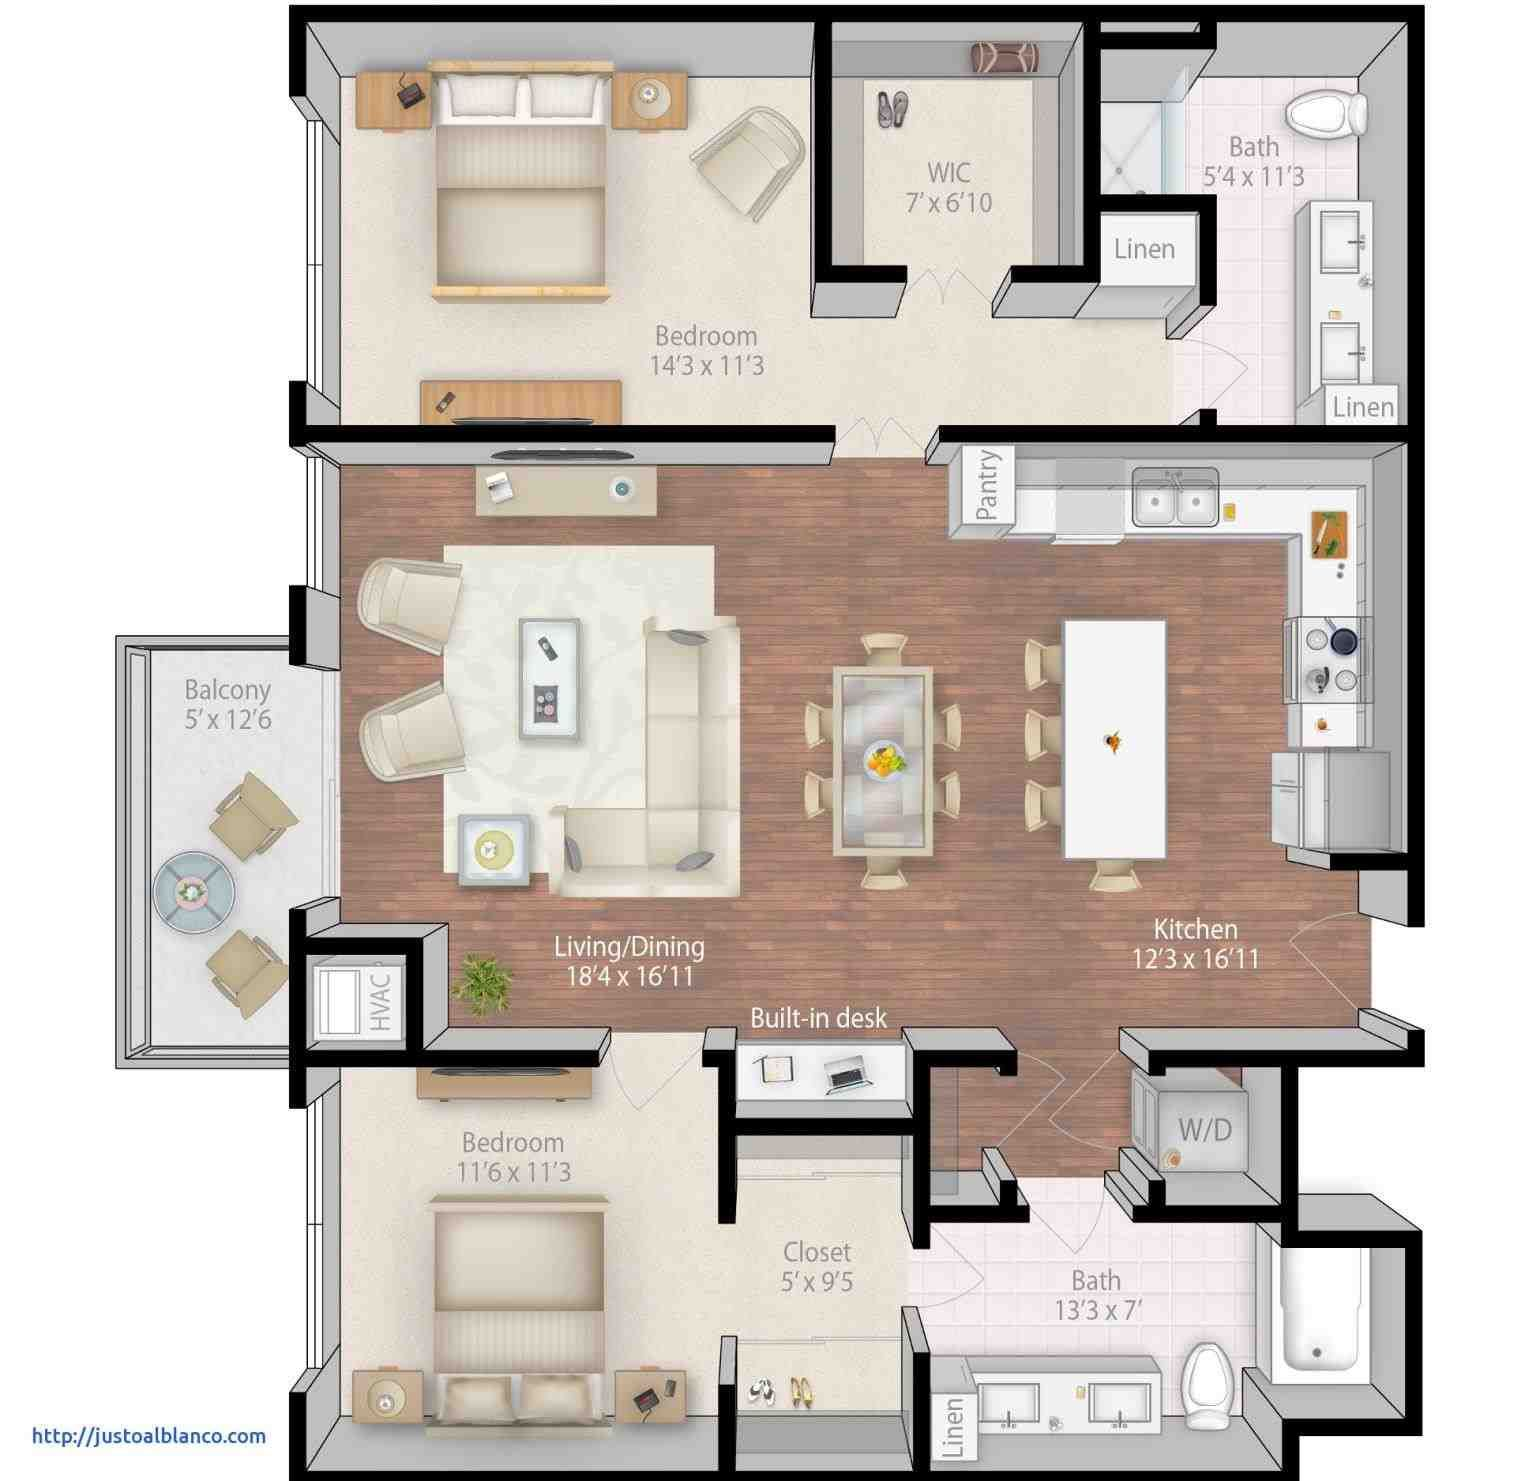 3 To 4 Bedroom Apartments Near Me: 4 Bedroom Luxury Apartment Floor Plans